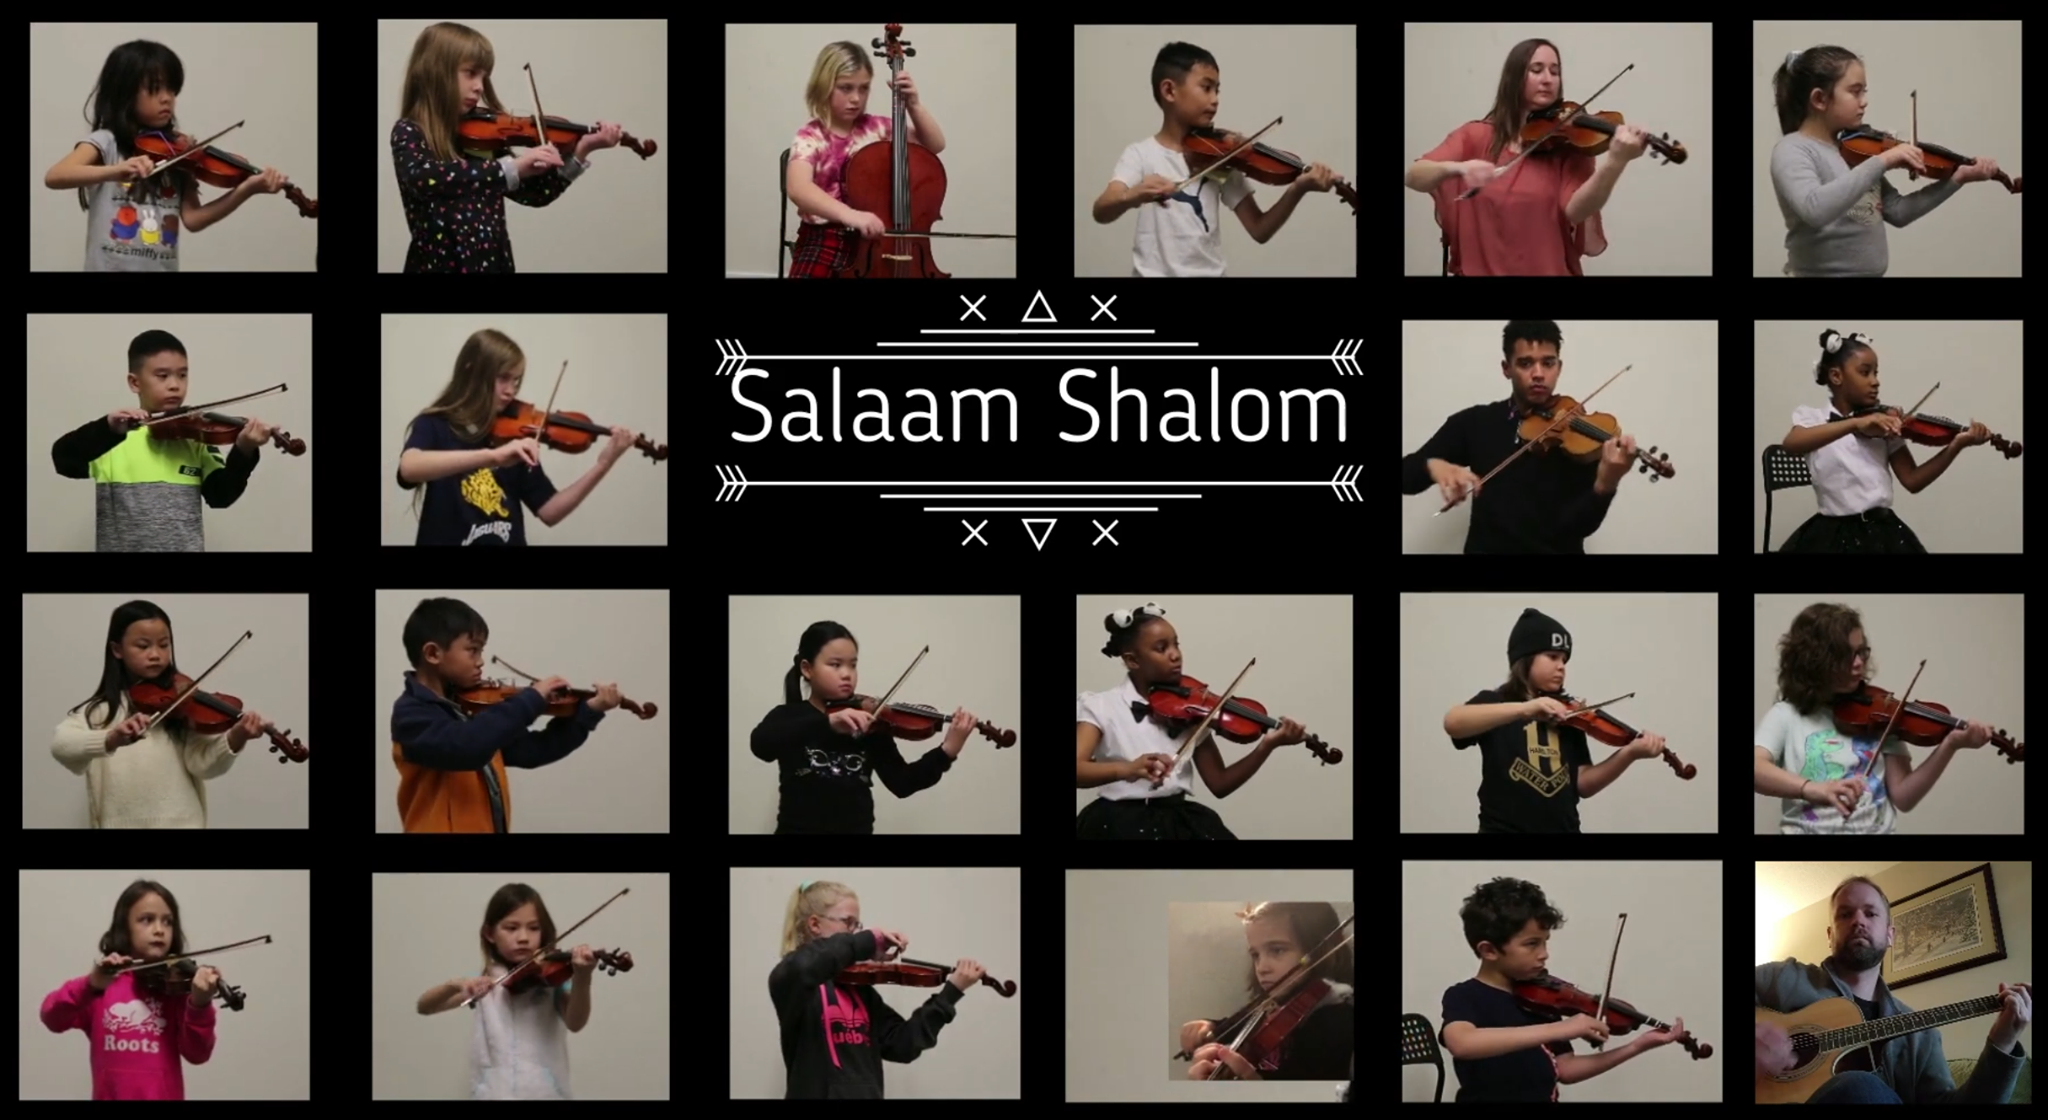 Salaam Shalom by the Junior Orchestra